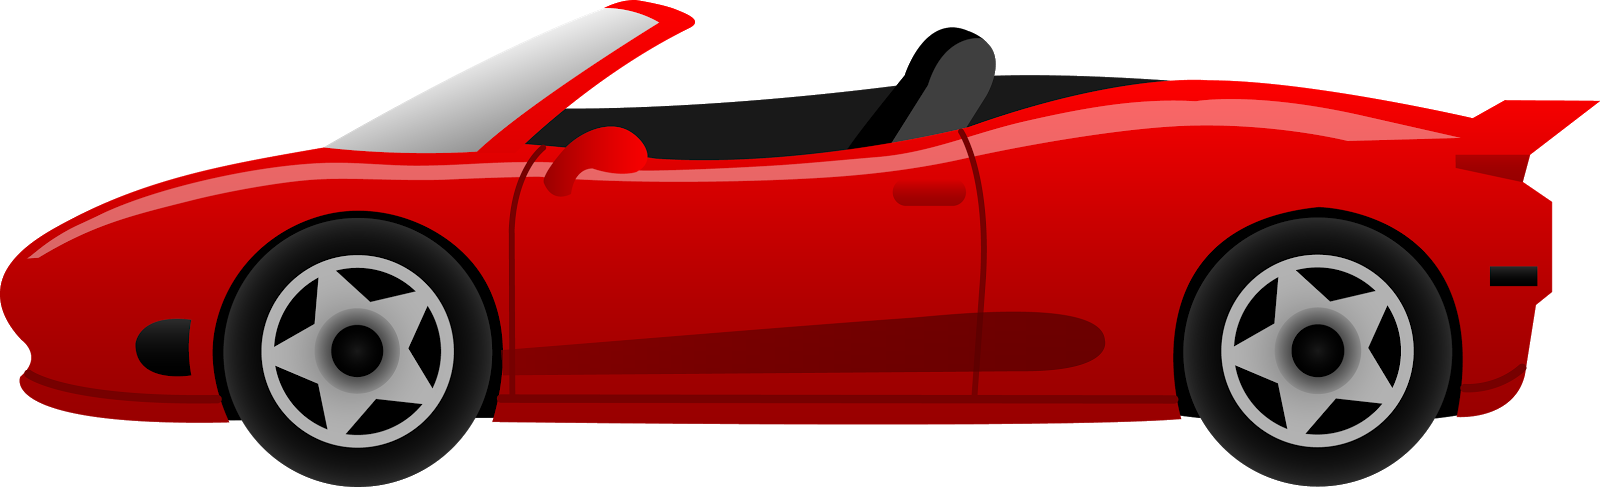 Red race car clipart image transparent download 28+ Collection of Car Clipart Transparent | High quality, free ... image transparent download